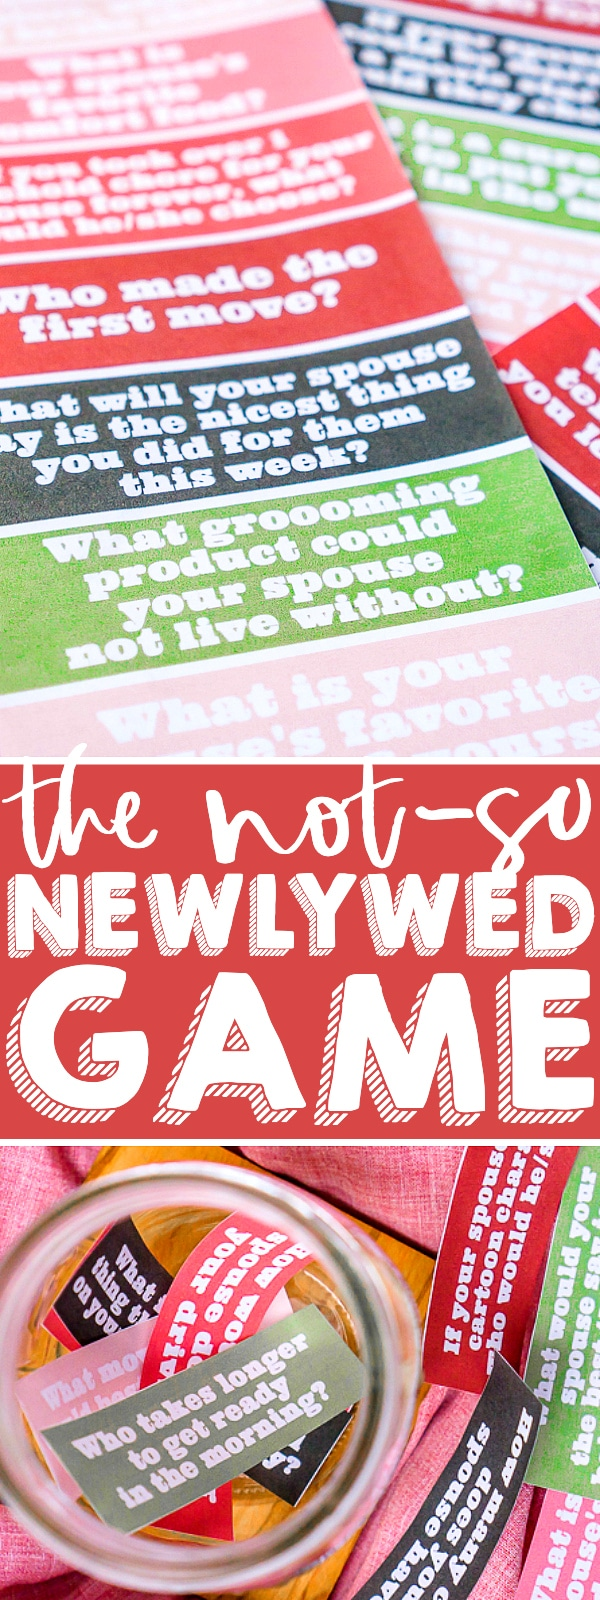 The Not So Newlywed Game is a Couples Game that tests how well you really know your partner! Enjoy as a cozy at home date night or host a fun couples' game night. Challenge your knowledge of one another and hopefully learn something new! | The Love Nerds #couplesquestions #datenightathome #couplesgames